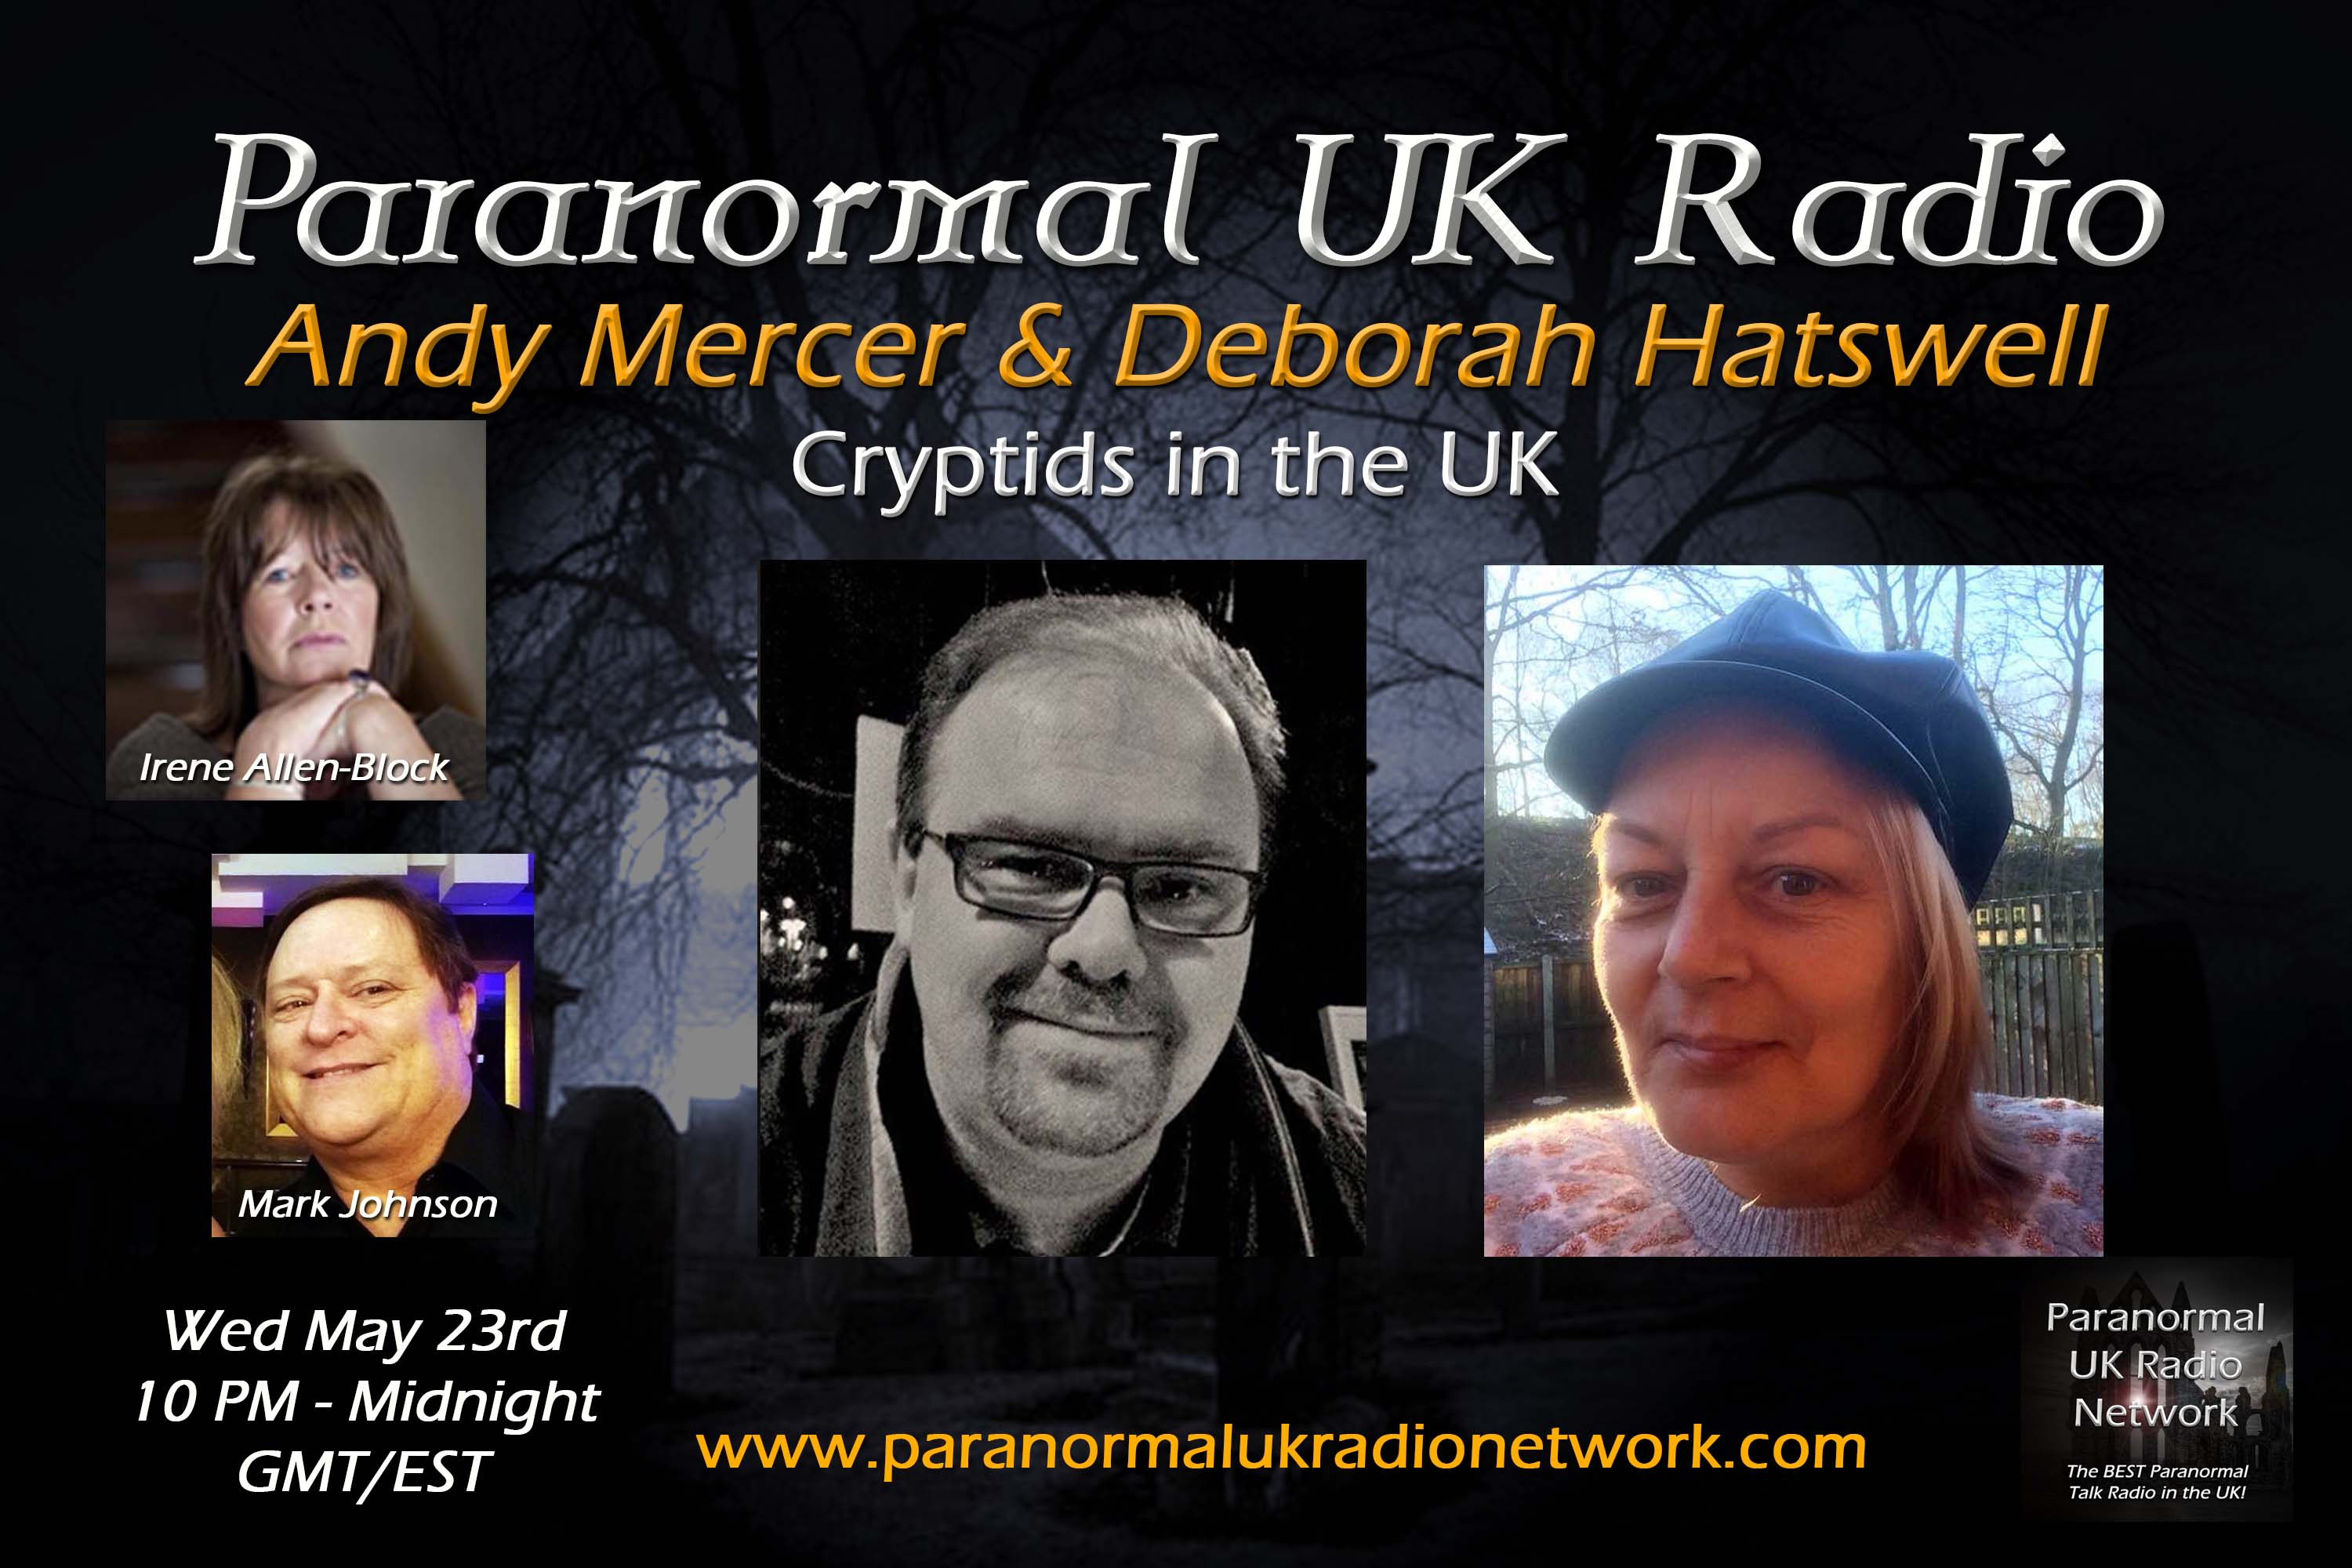 paranormal network